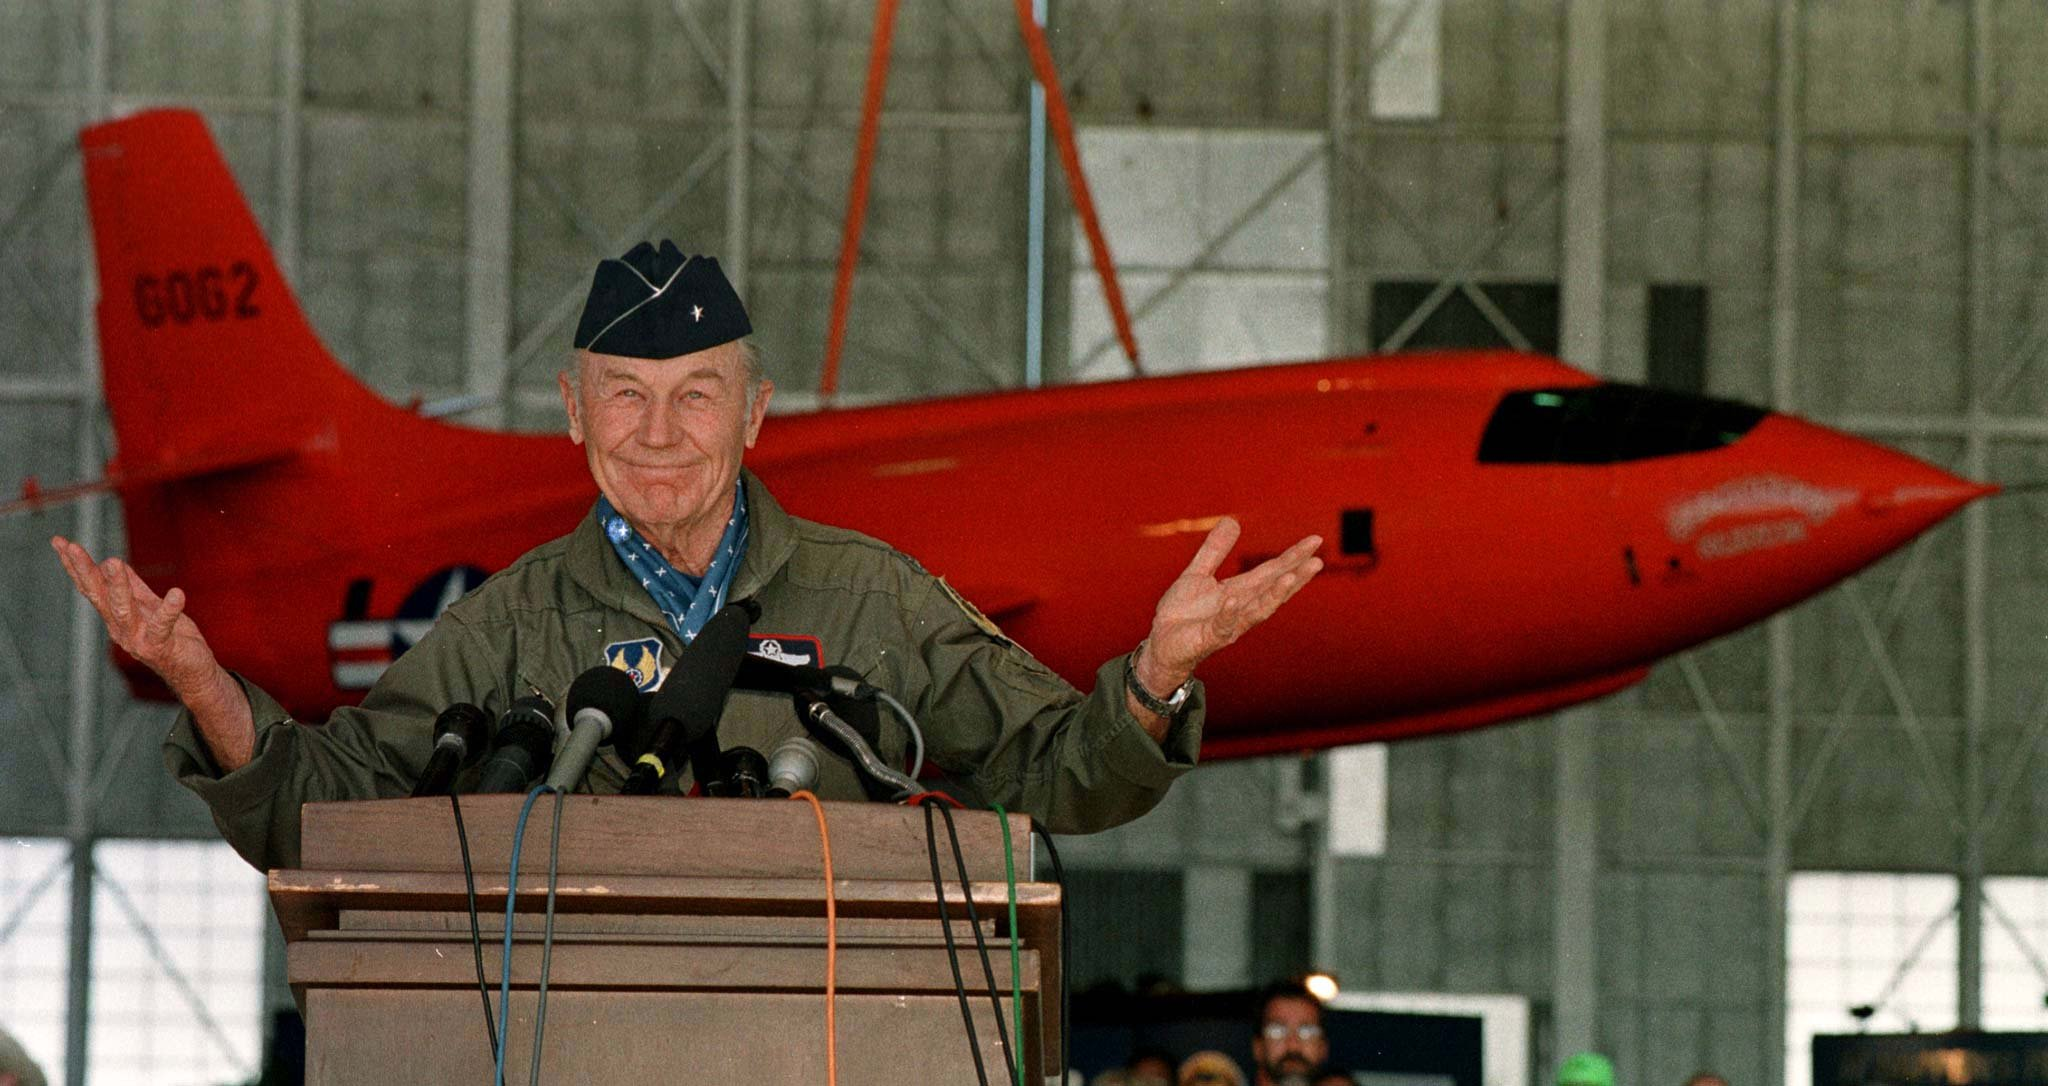 Chuck Yeager dnes